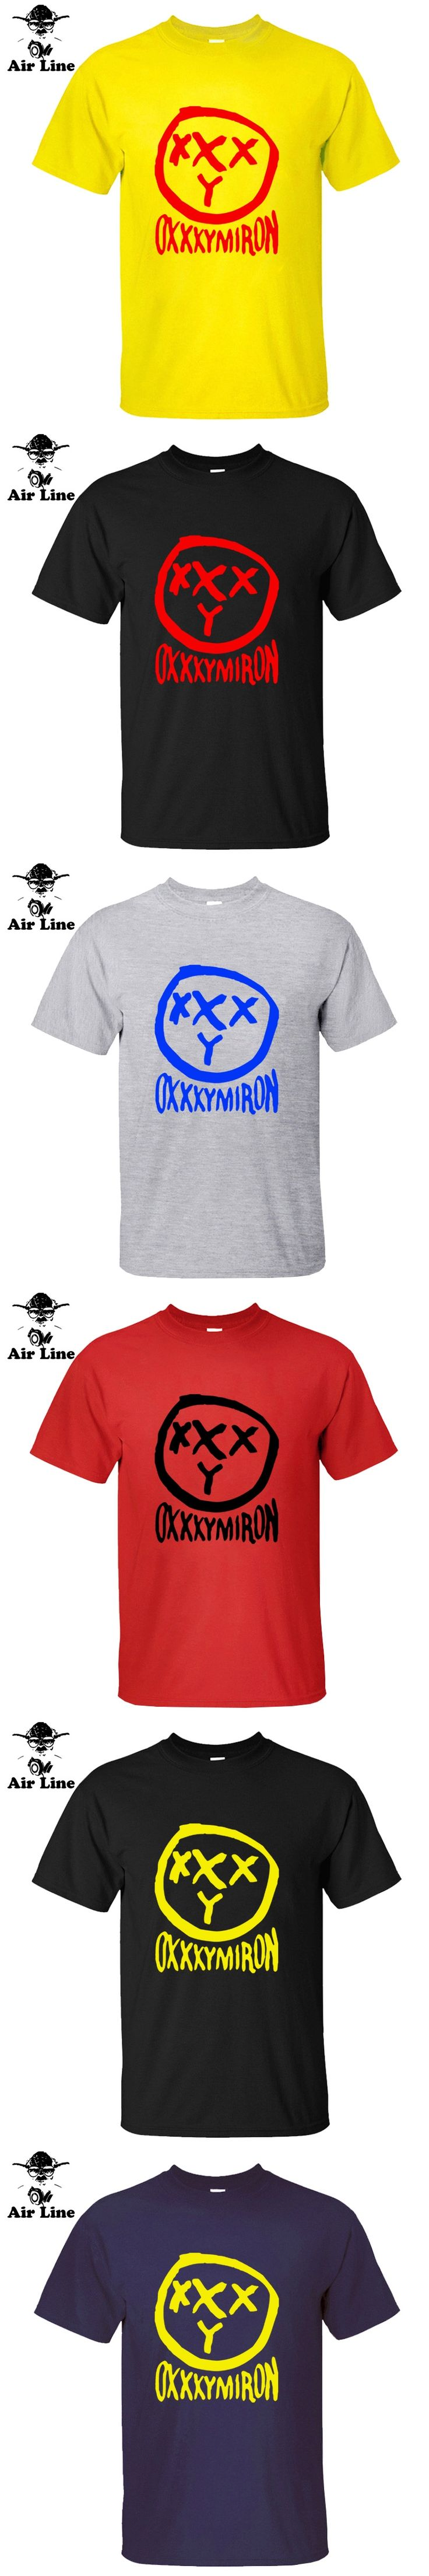 OXXXYMIRON Print Men T Shirt Funny Russia Rapper Hip Hop Band T-shirt For Man Mens Casual Tops Clothing Tshirt